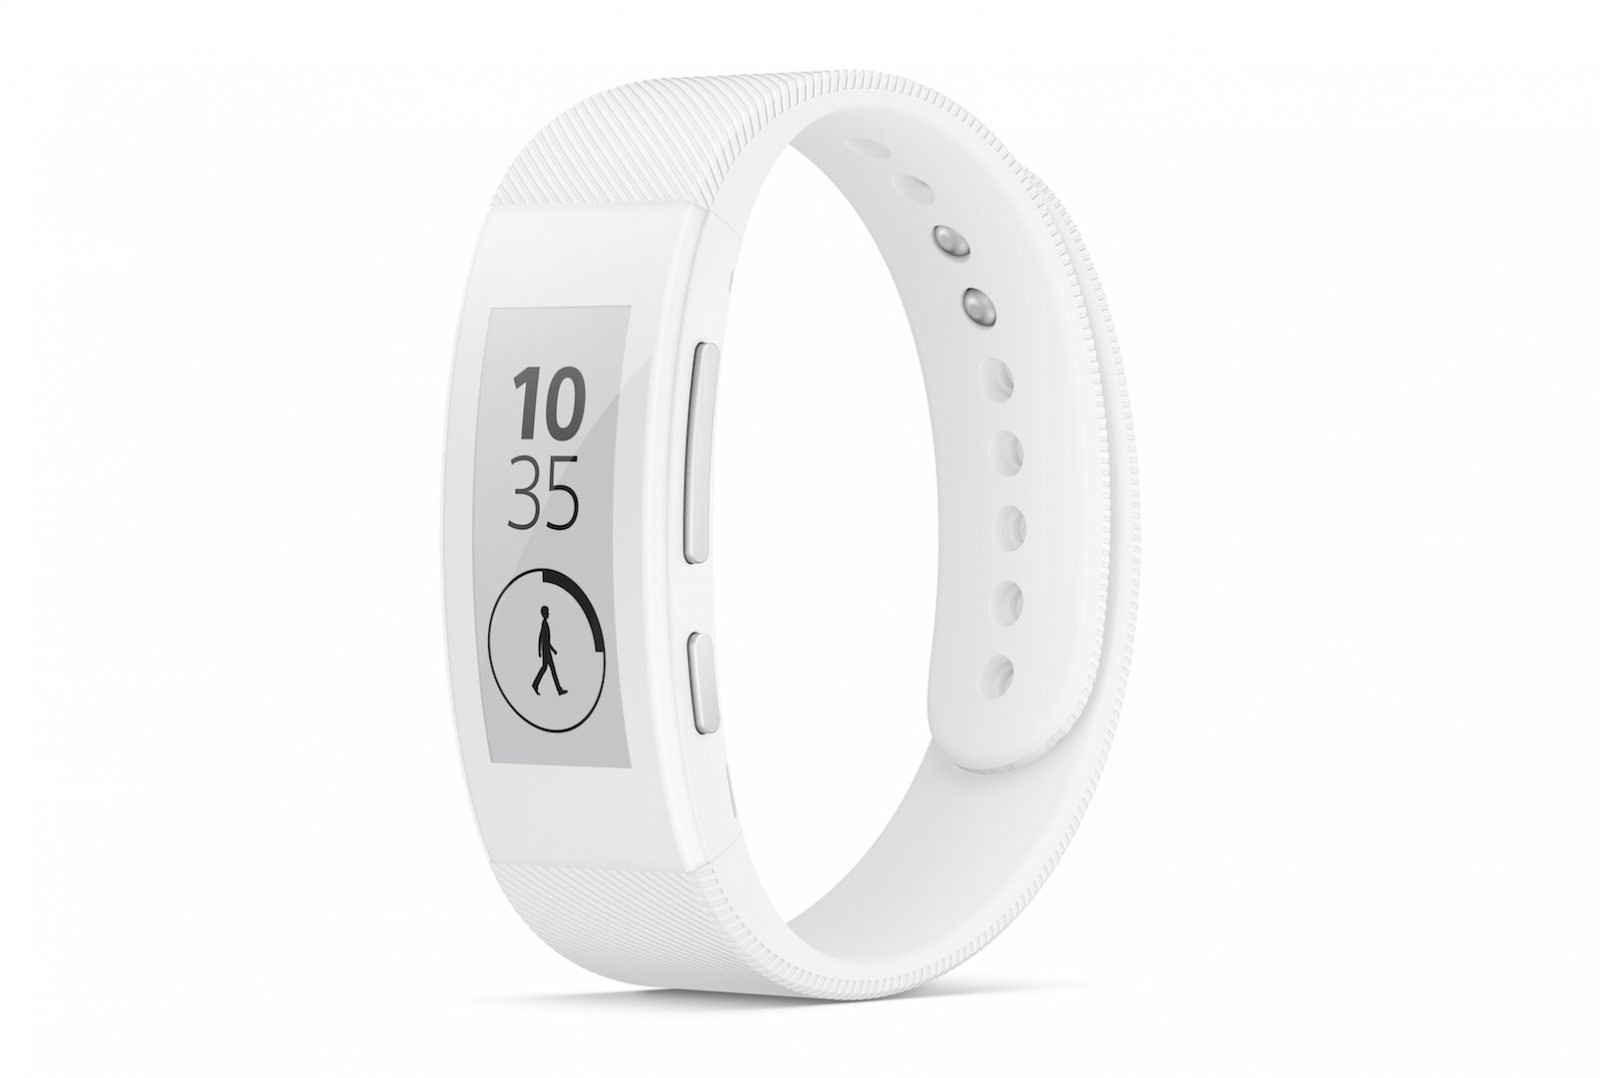 Sony SmartBand Talk Hands-On Review